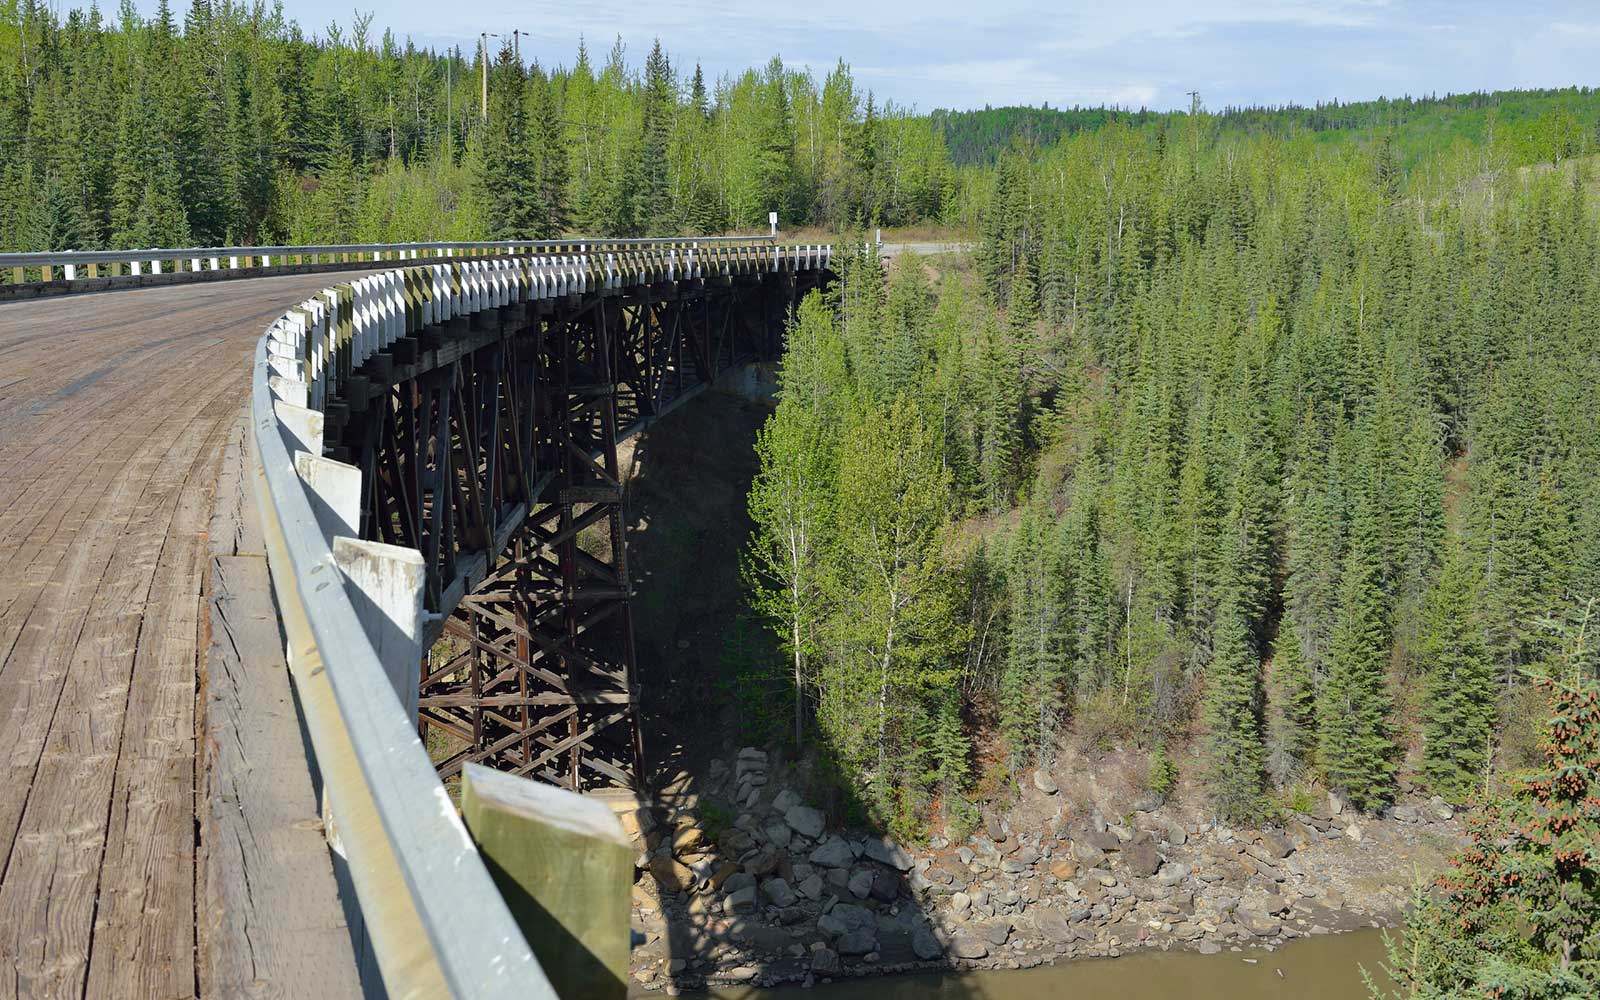 Kiskatinaw Bridge, British Columbia, Canada